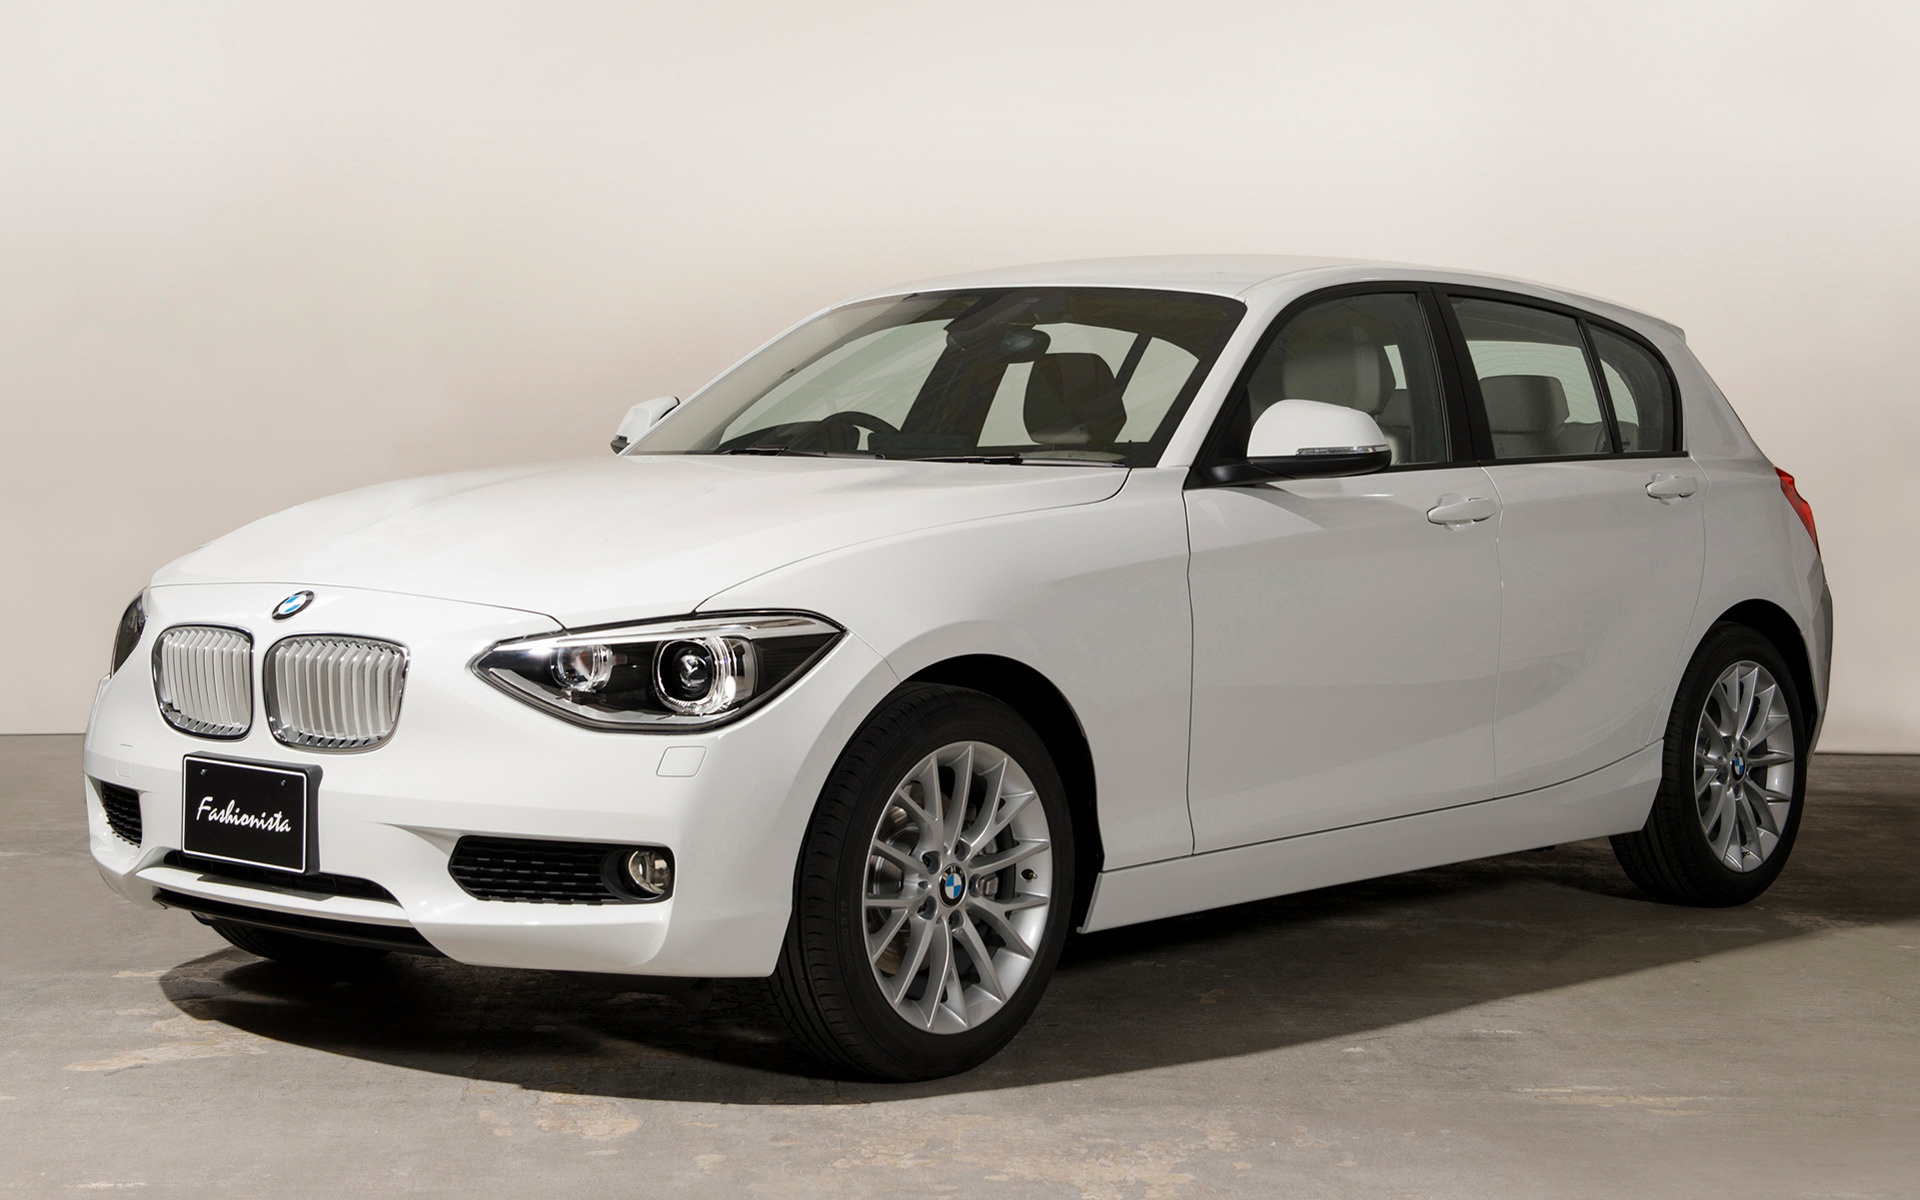 2018 BMW 1 Series 5 door photo - 1